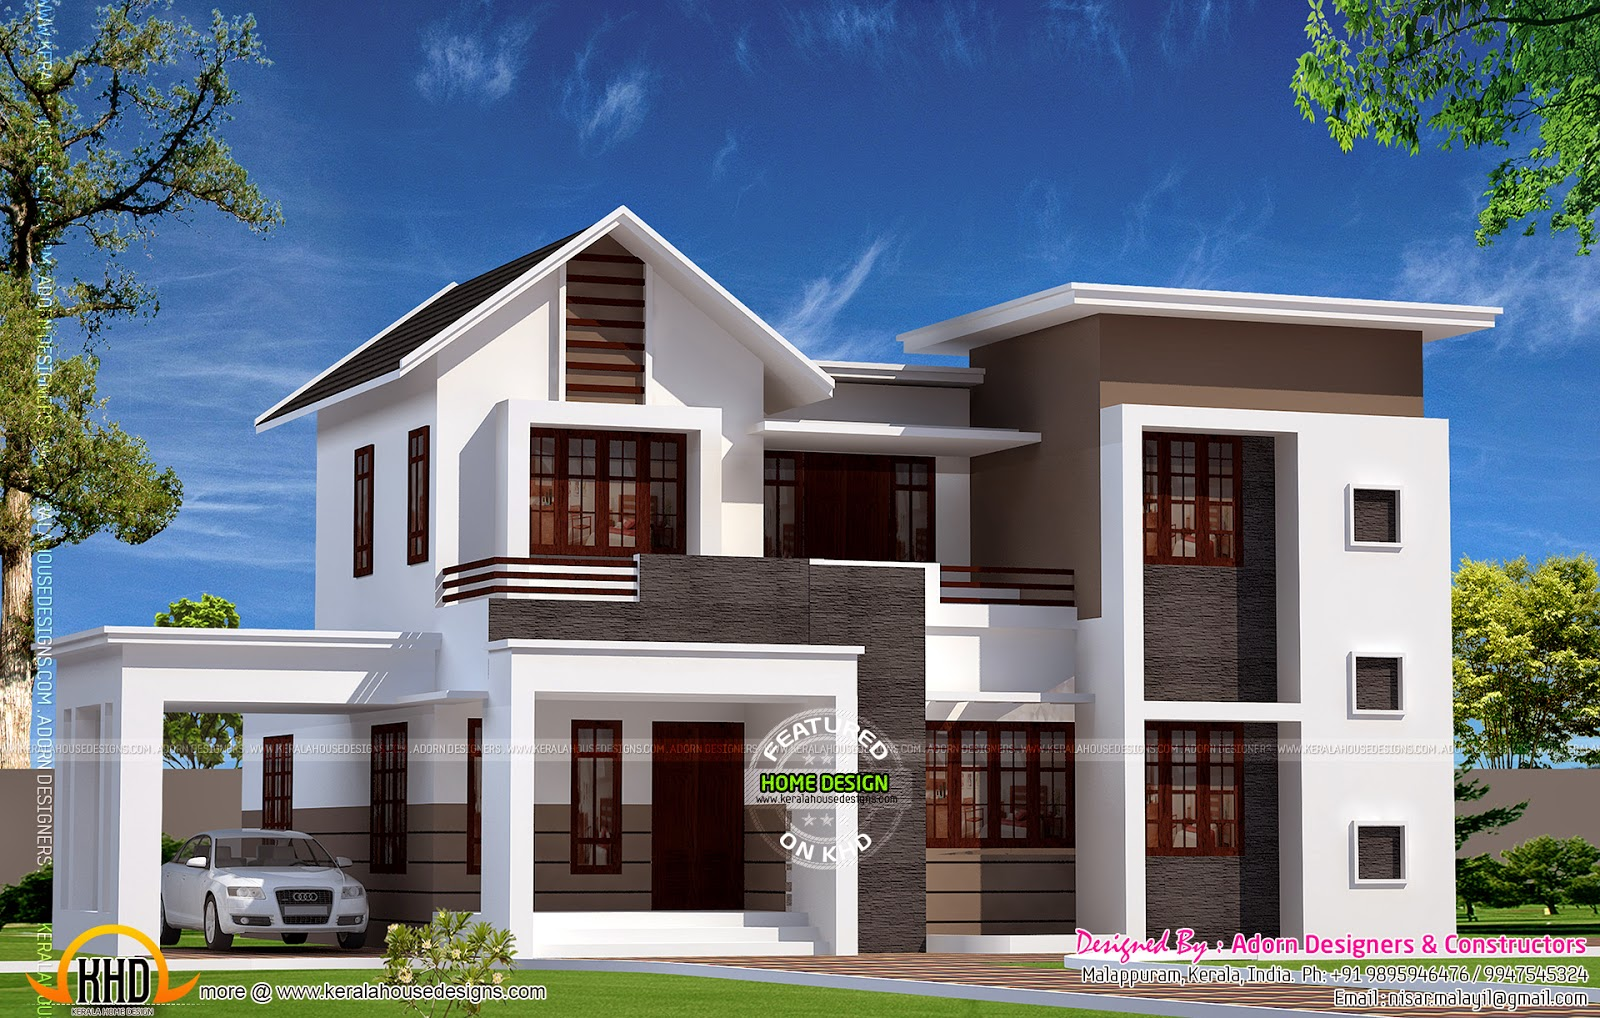 designing new home new house design modern homes designs new design home - New Home Design Ideas